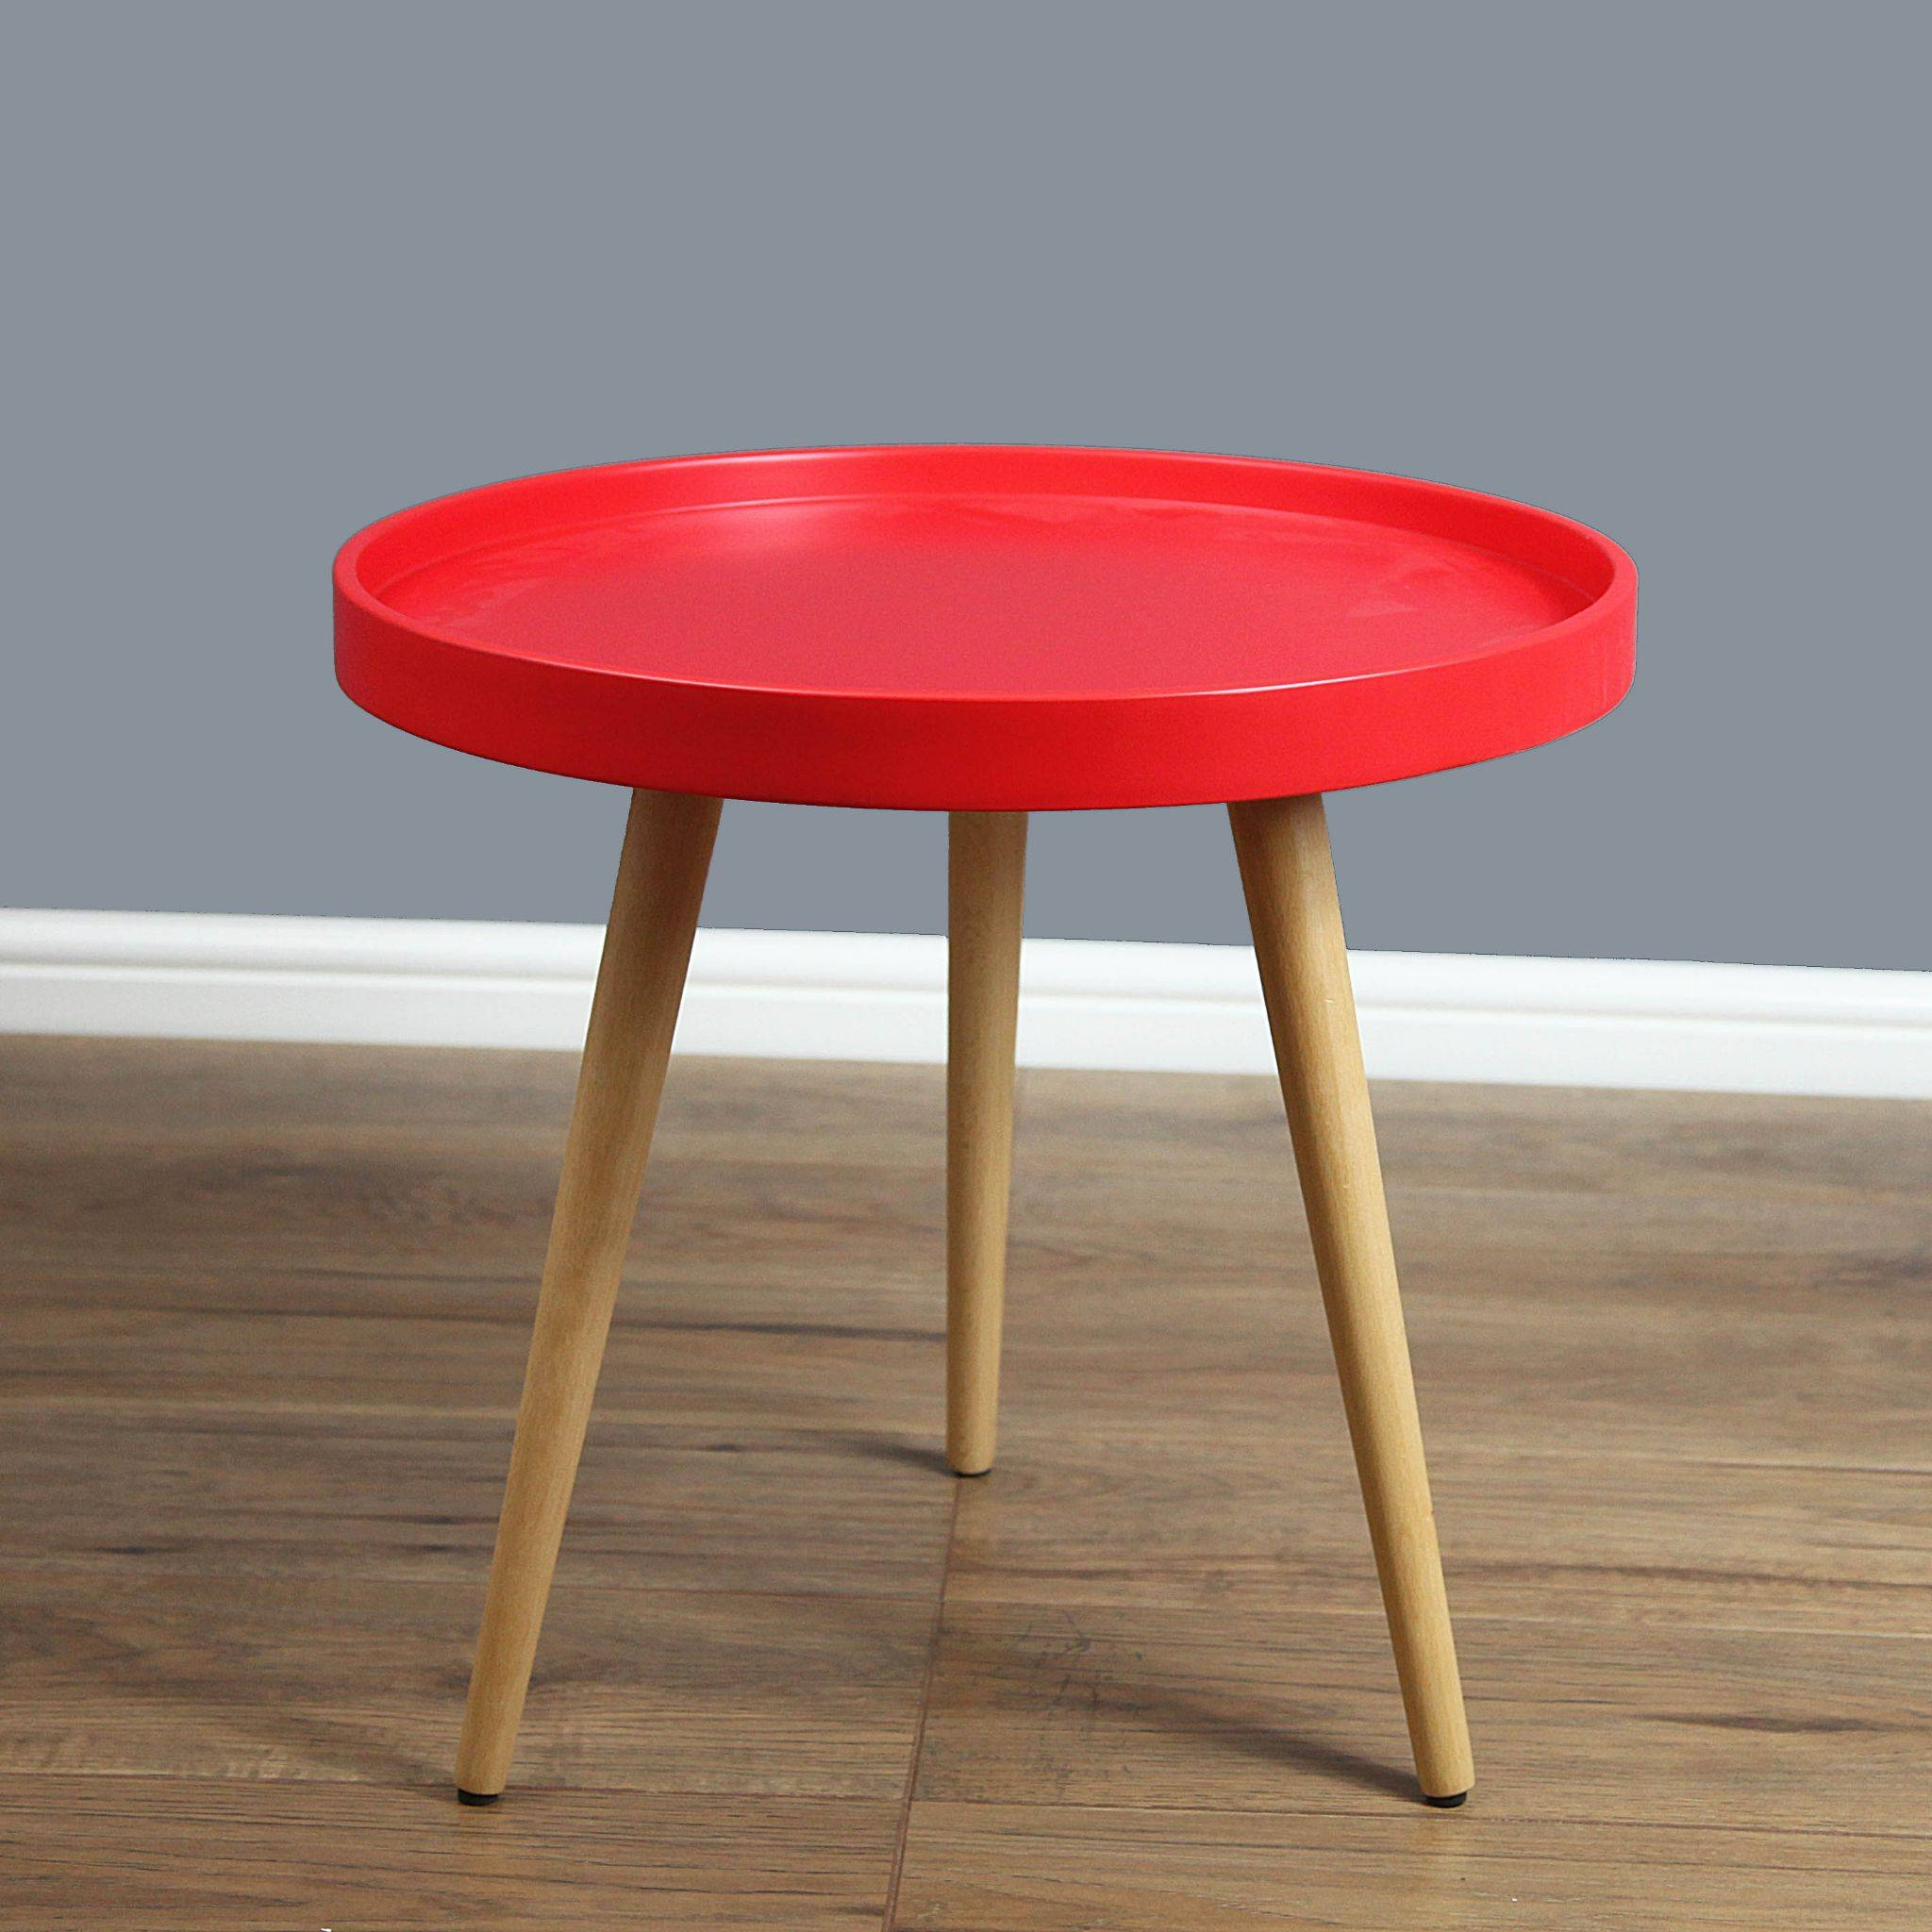 Mmilo Capri Round Tray Table In 50Cm - Red Matt regarding Round Red Coffee Tables (Image 18 of 30)